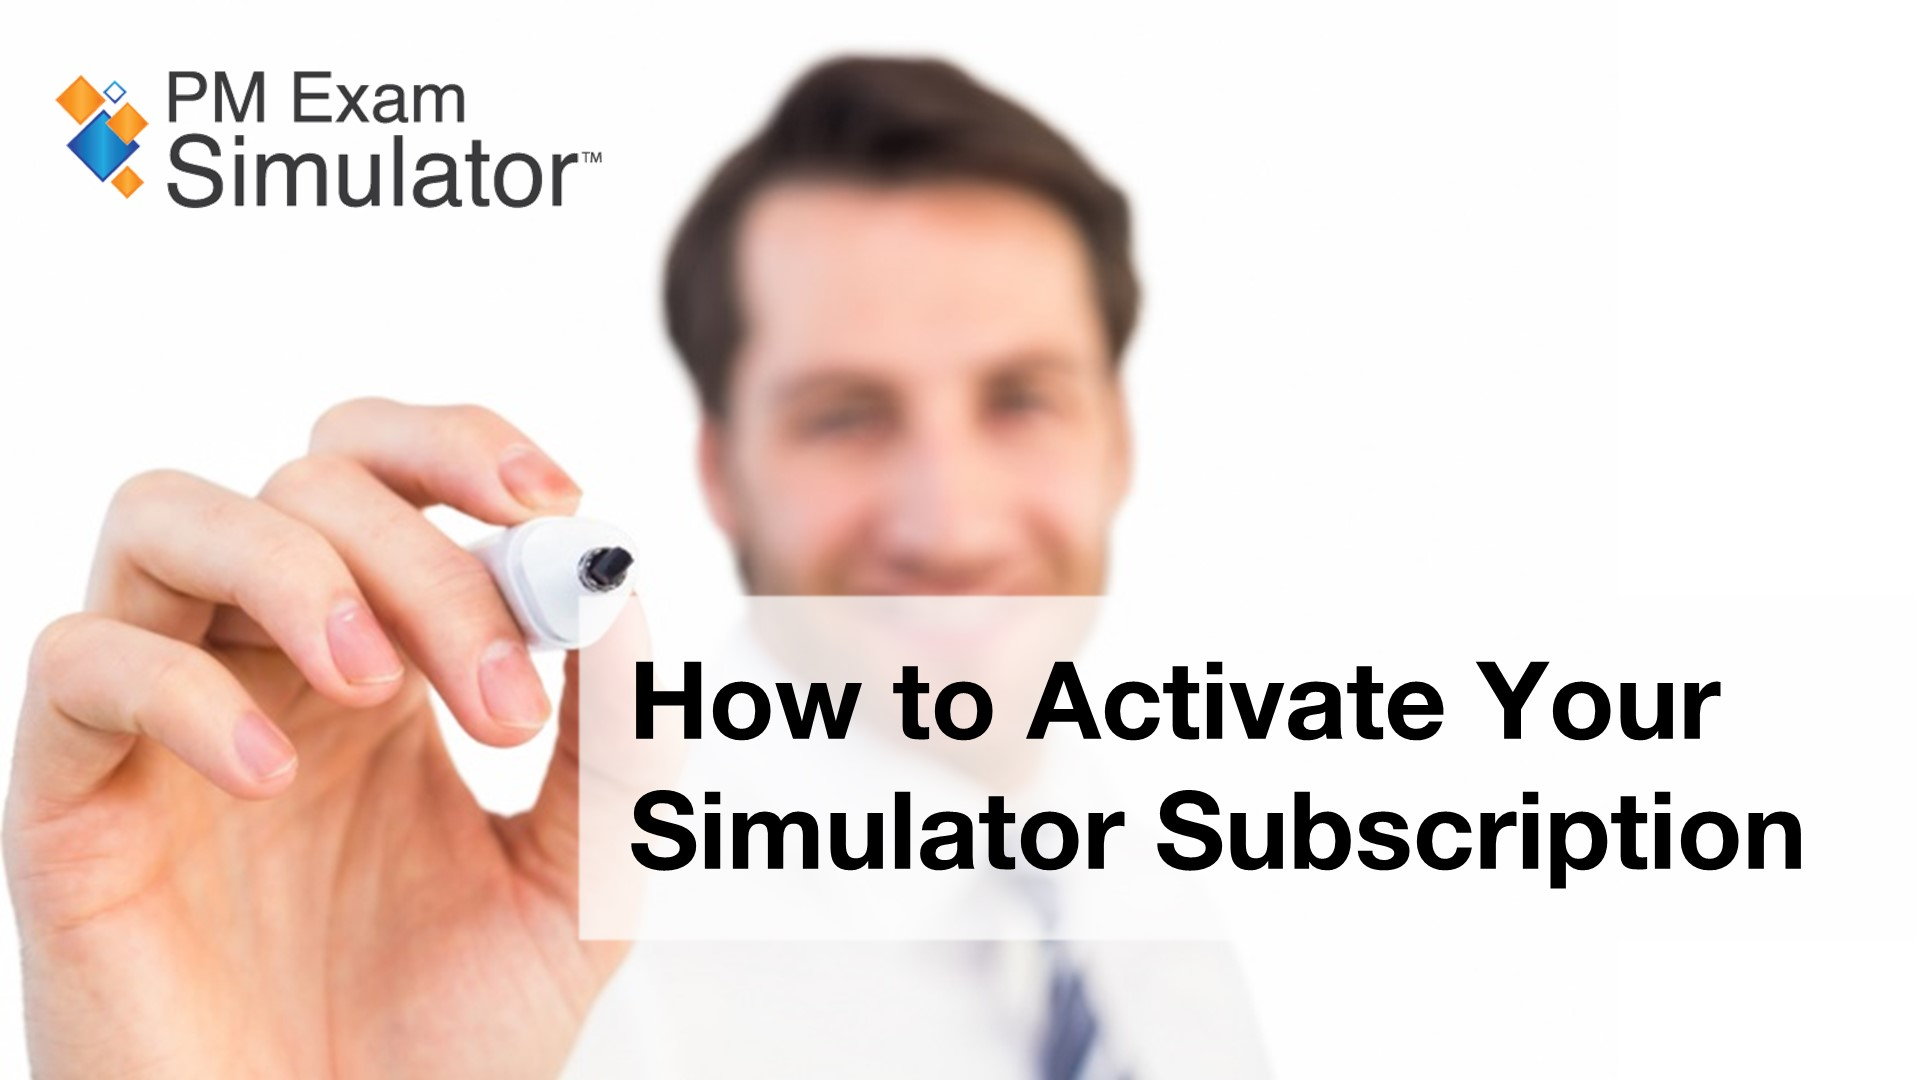 How to Activate your Simulator Subscription